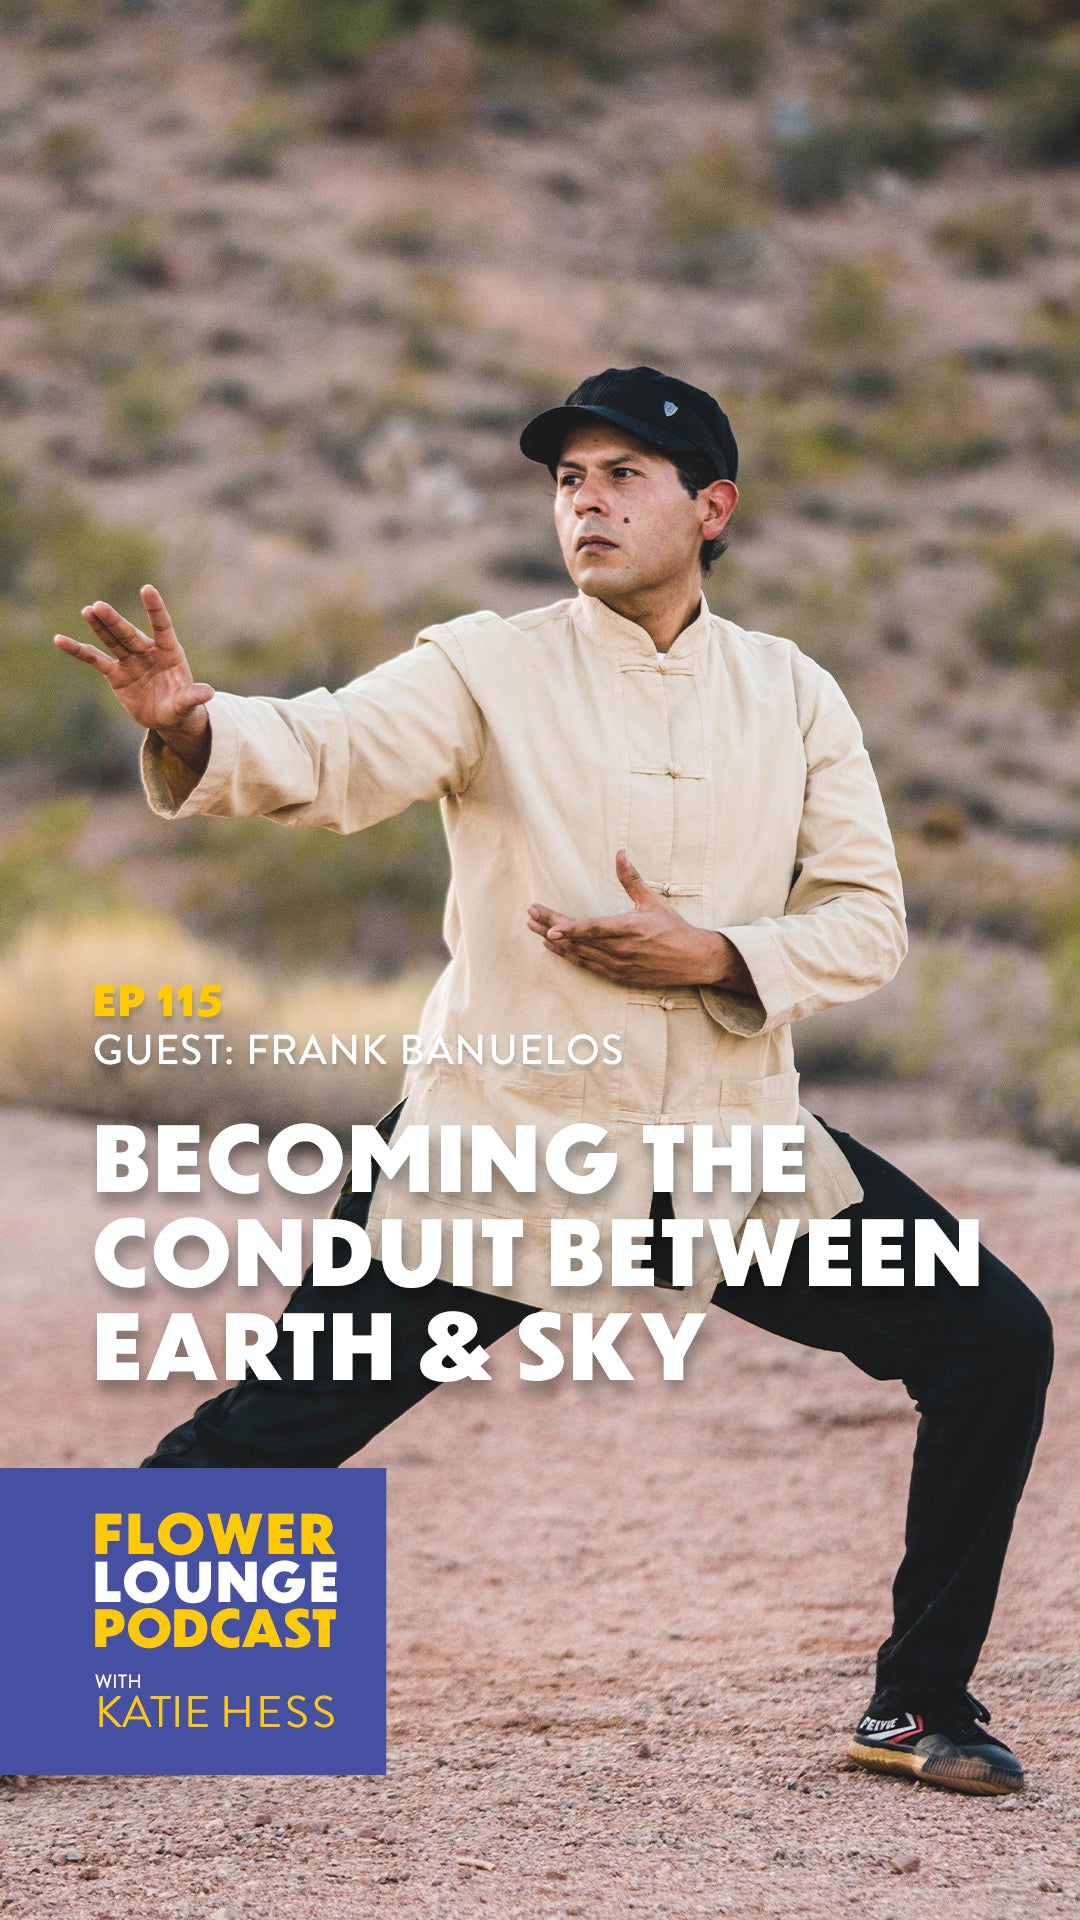 Becoming the Conduit Between Earth & Sky with Frank Banuelos